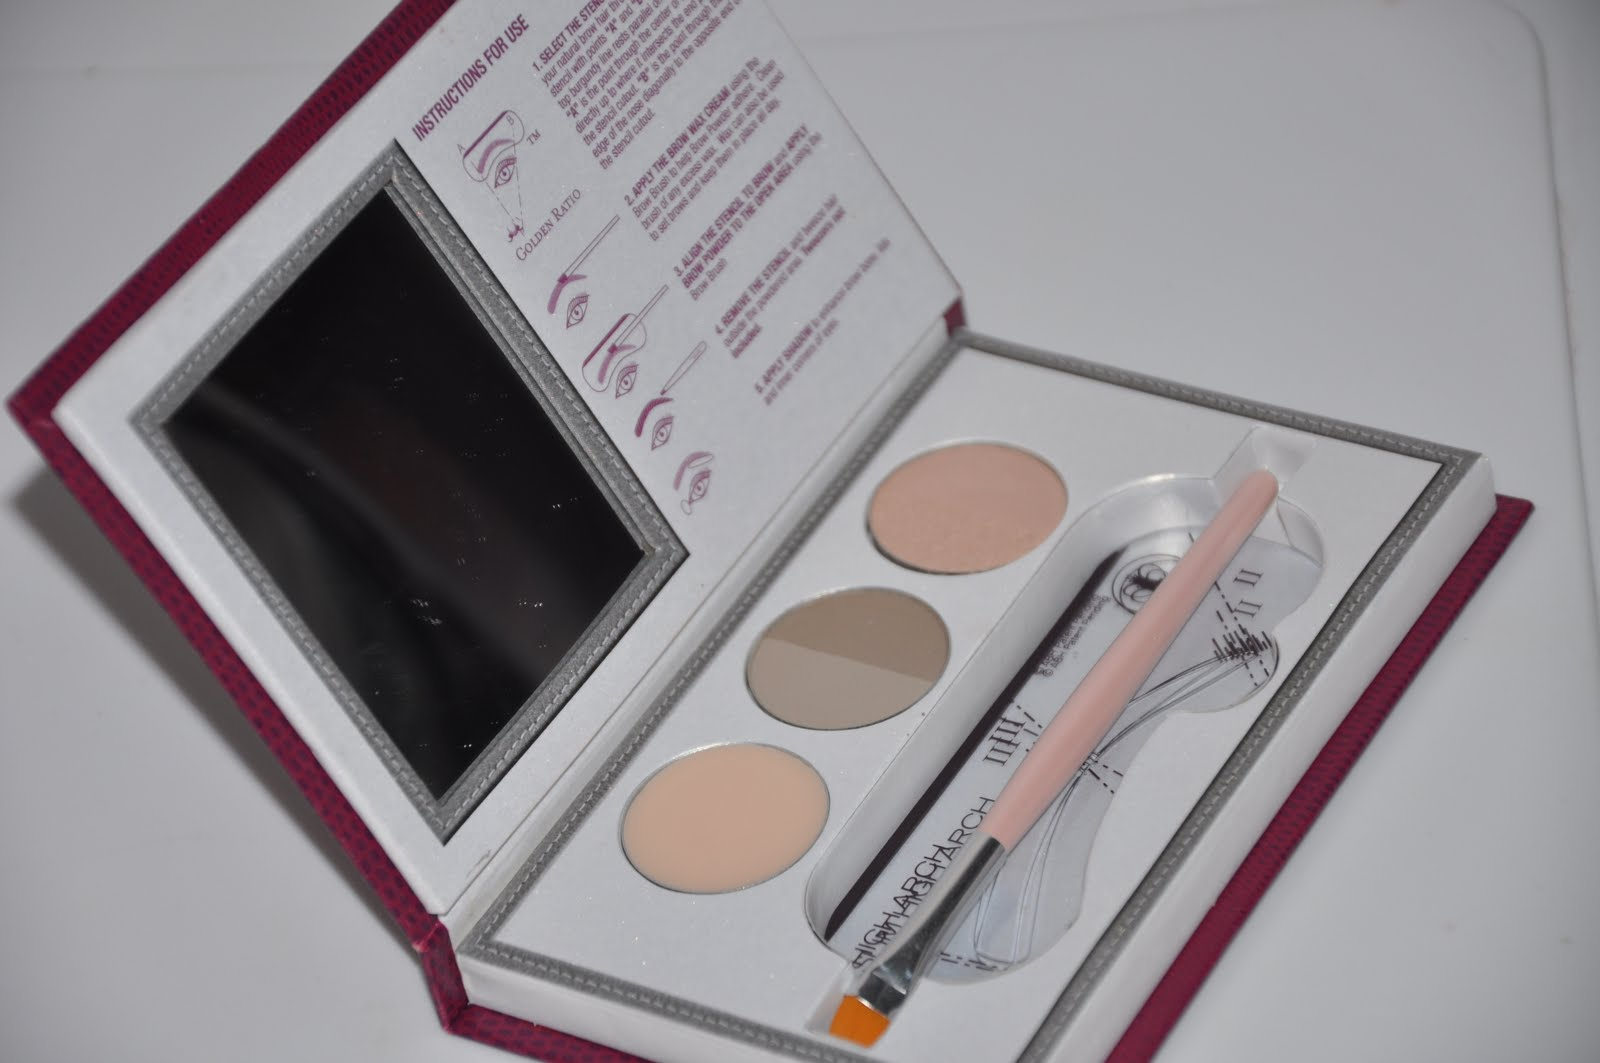 Bella's Beauty Spot: Anastasia Beverly Hills Beauty Express Kit Review